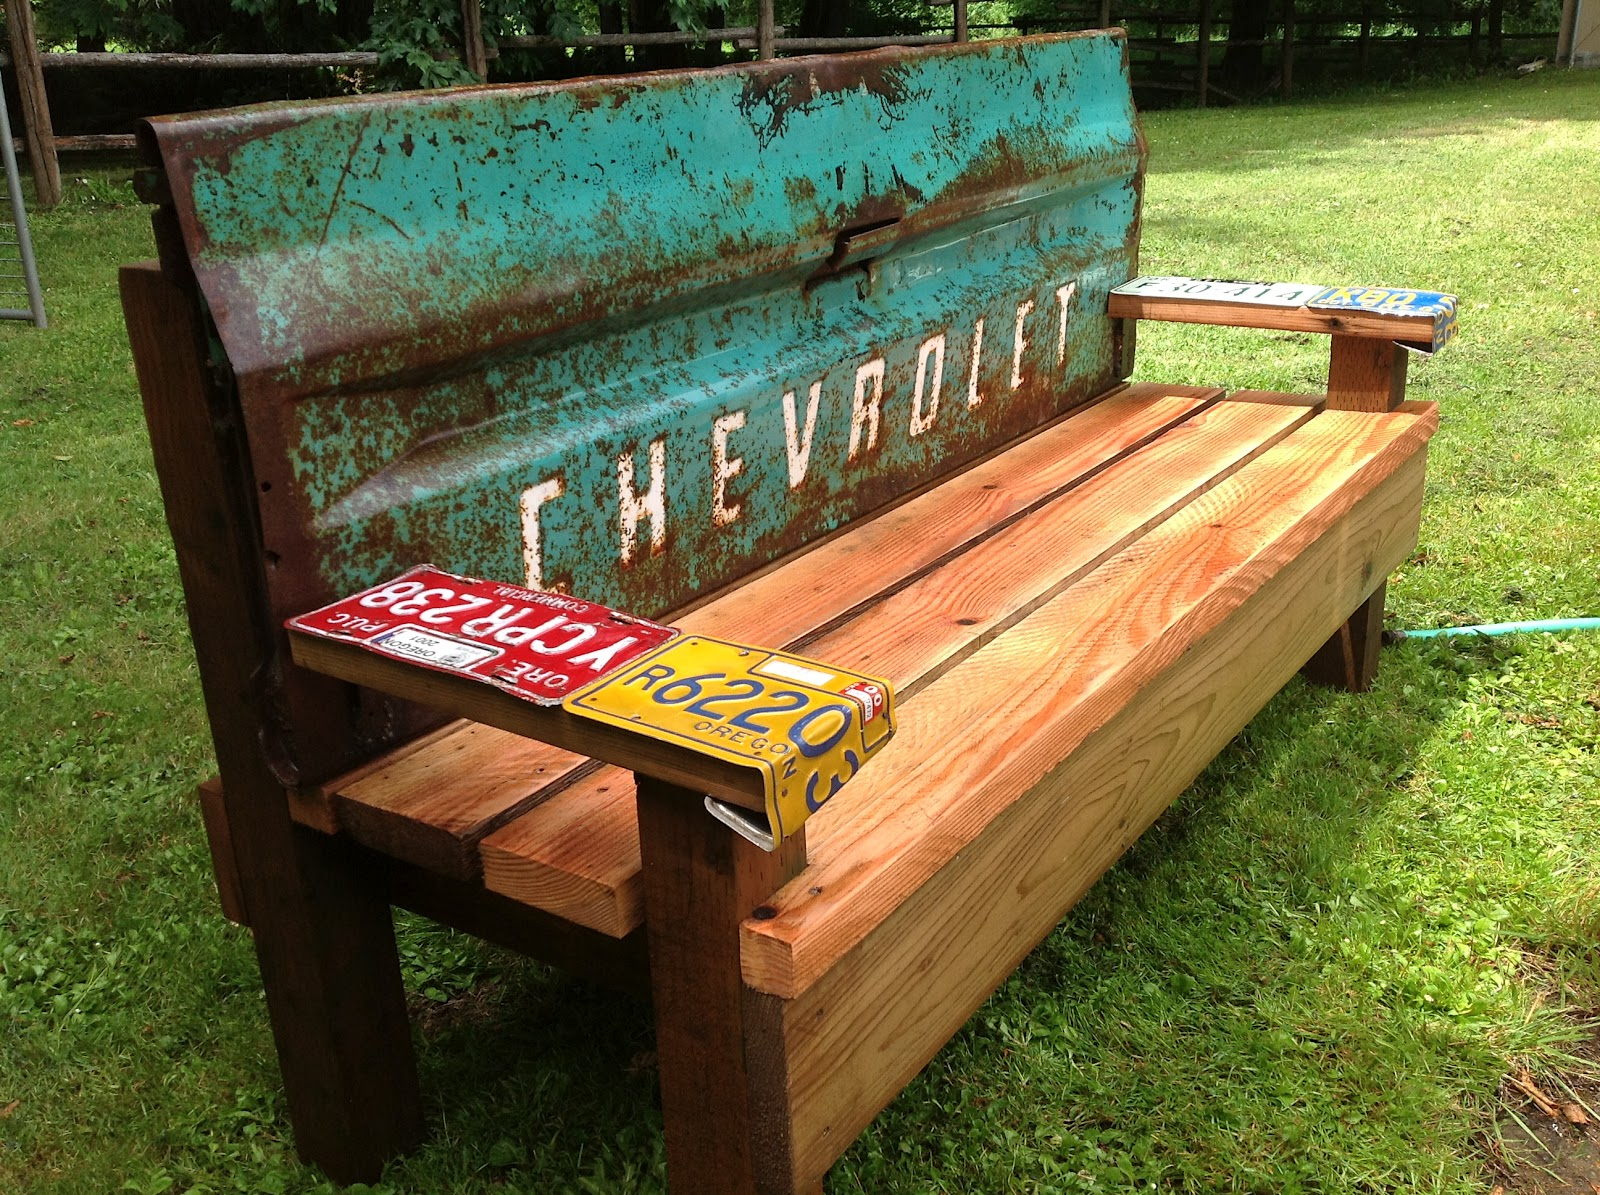 Kathi's Garden Art Rust-n-Stuff: Team building - Garden Bench with ...